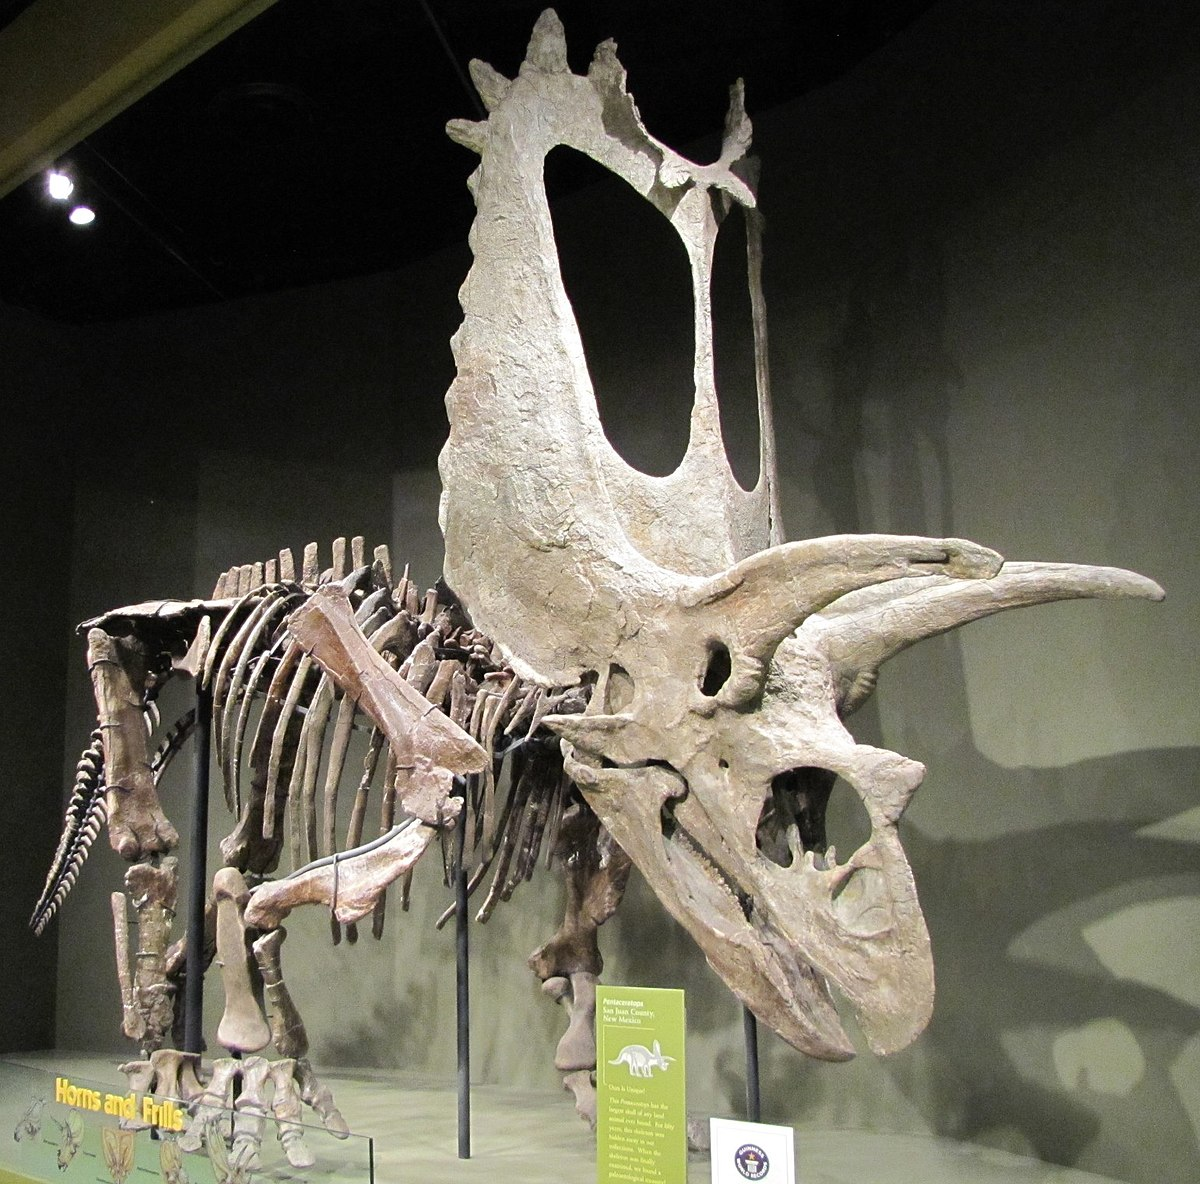 Titanoceratops - Wikipedia